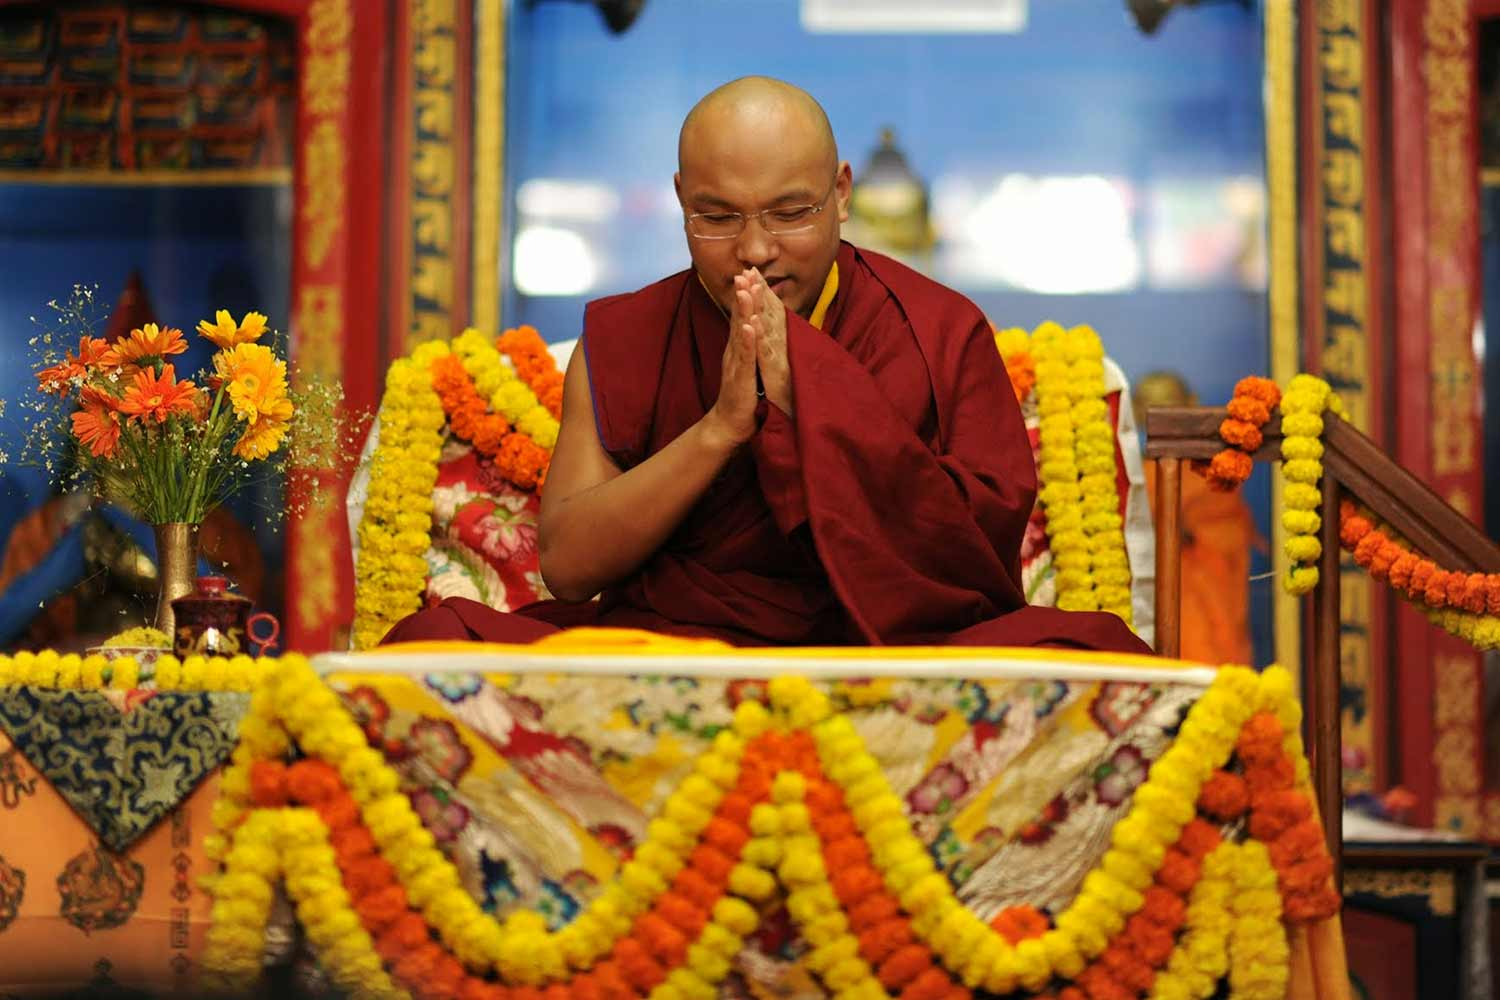 Greetings on indian independence day from the 17th gyalwang karmapa greetings on indian independence day from the 17th gyalwang karmapa ogyen trinley dorje m4hsunfo